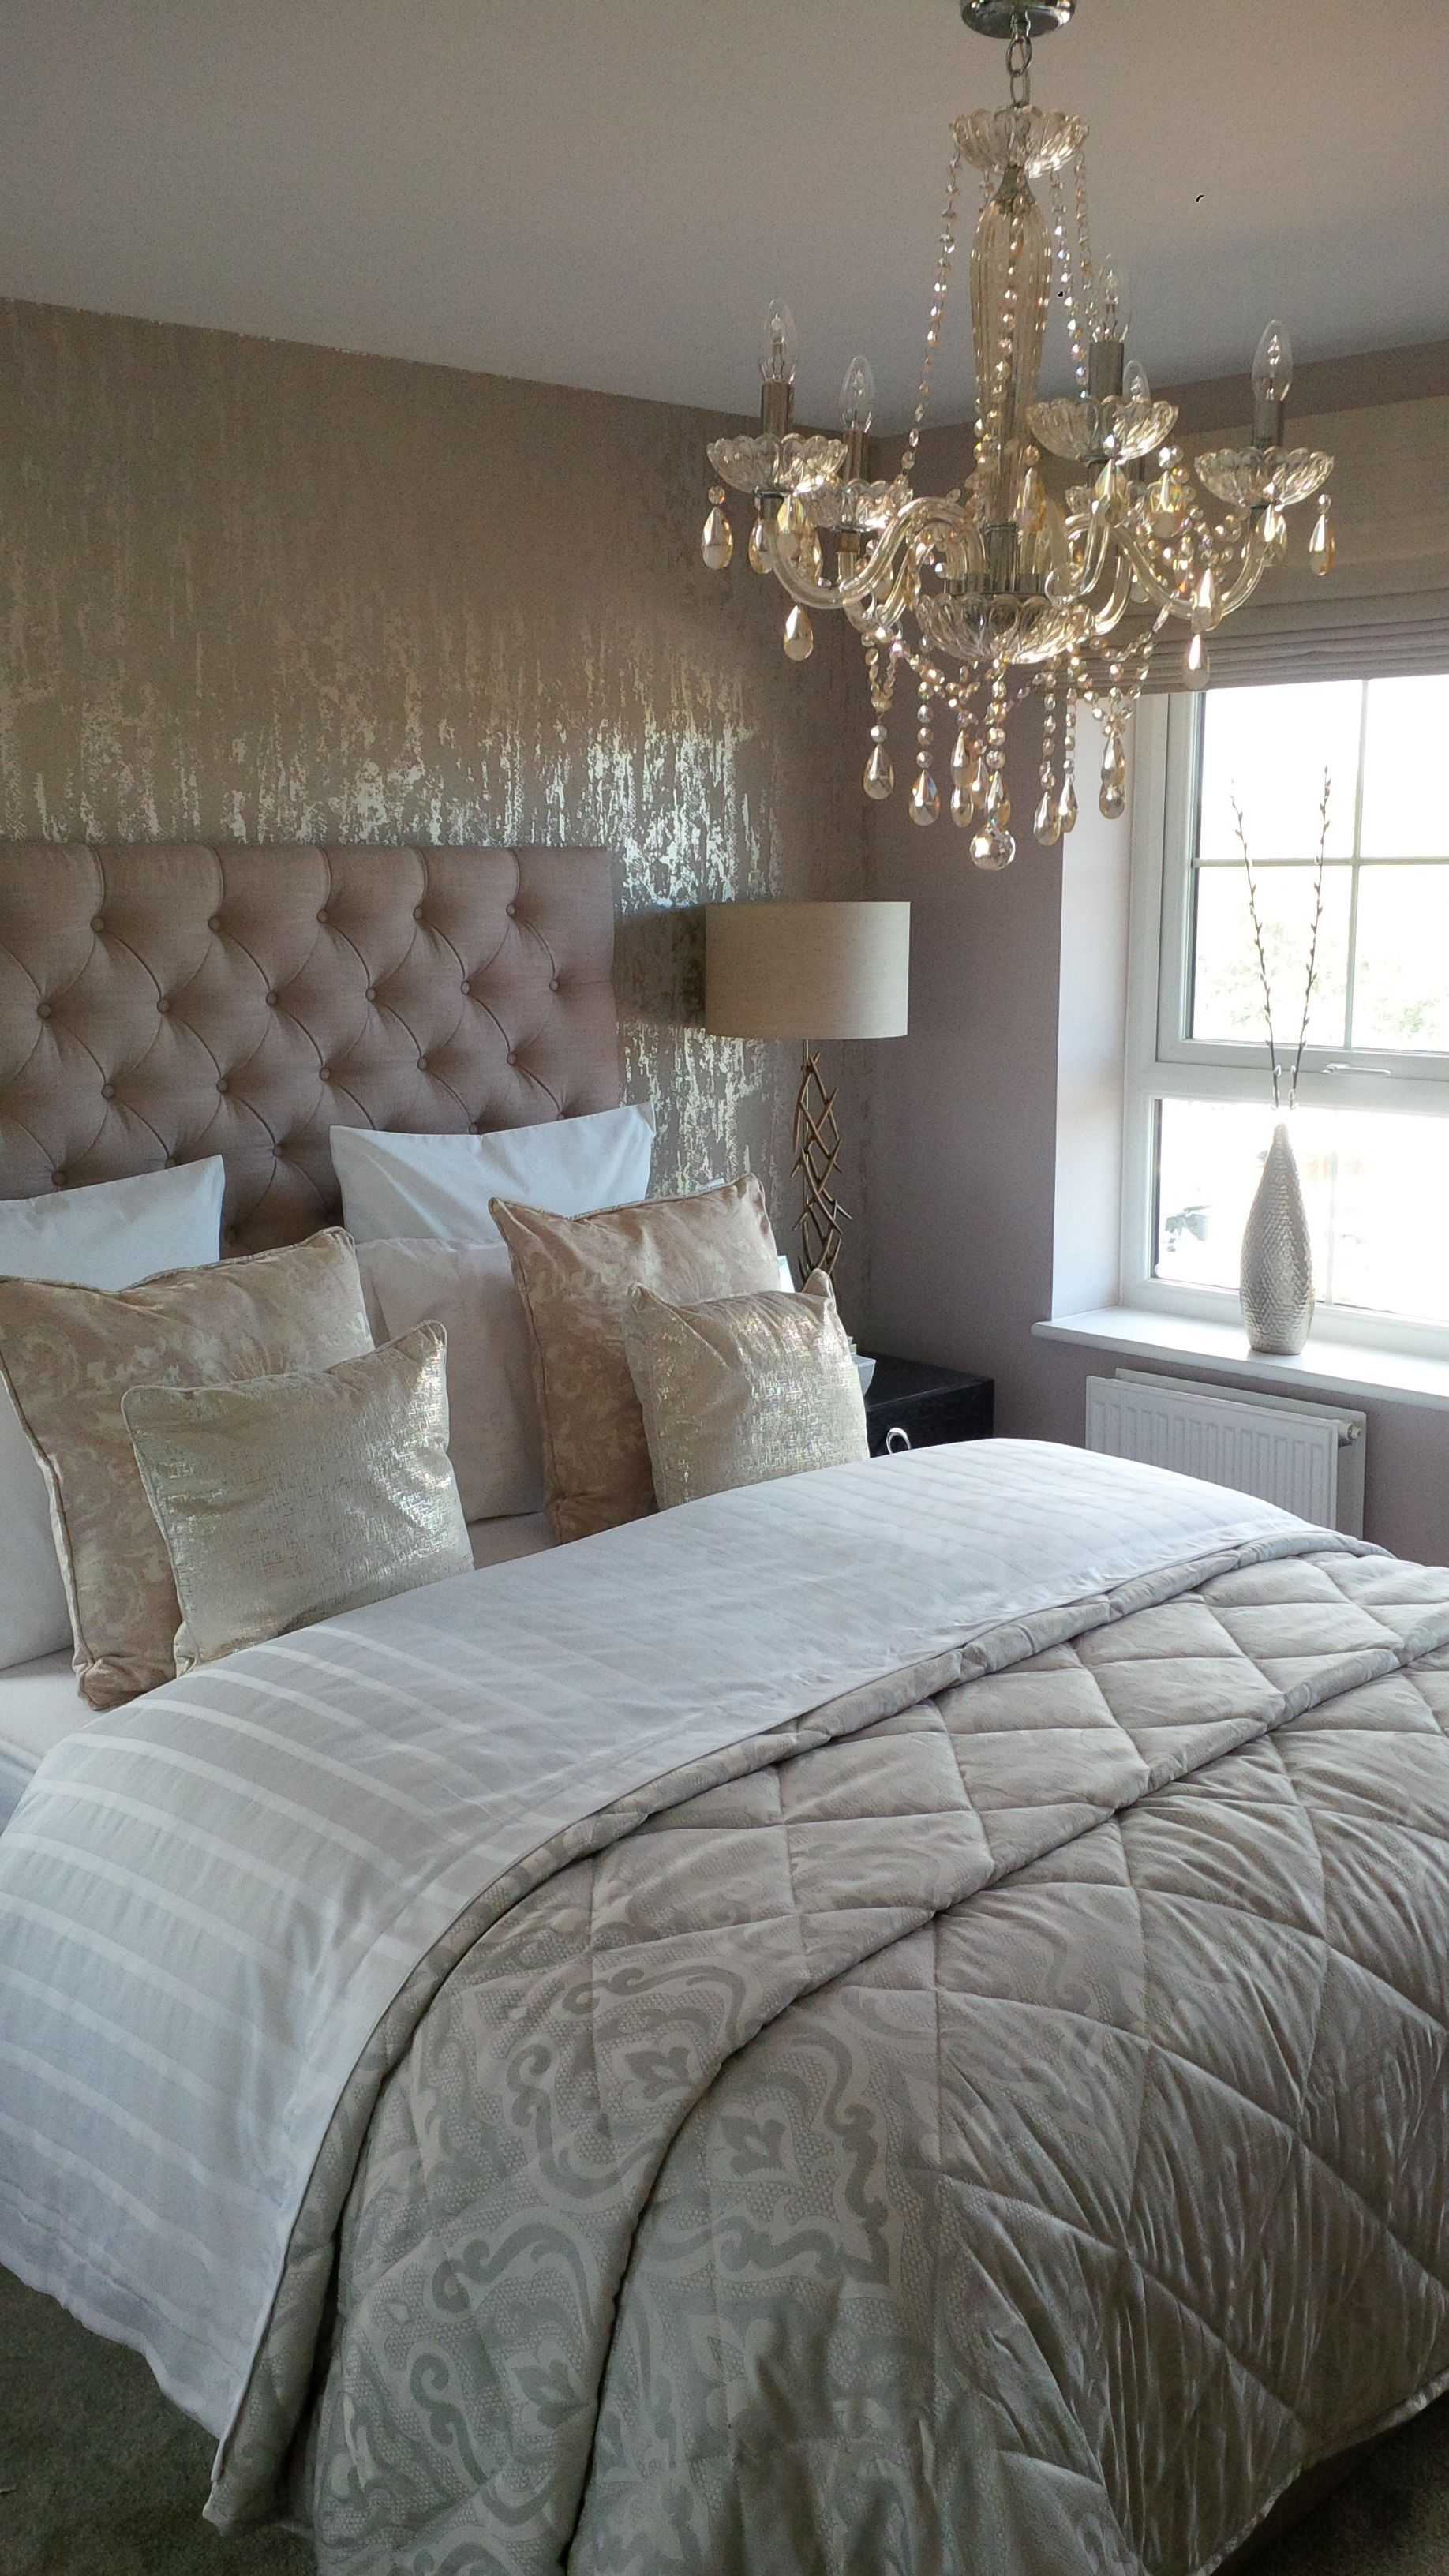 Pin by Claire D on Headboards  Luxurious bedrooms, Glam bedroom